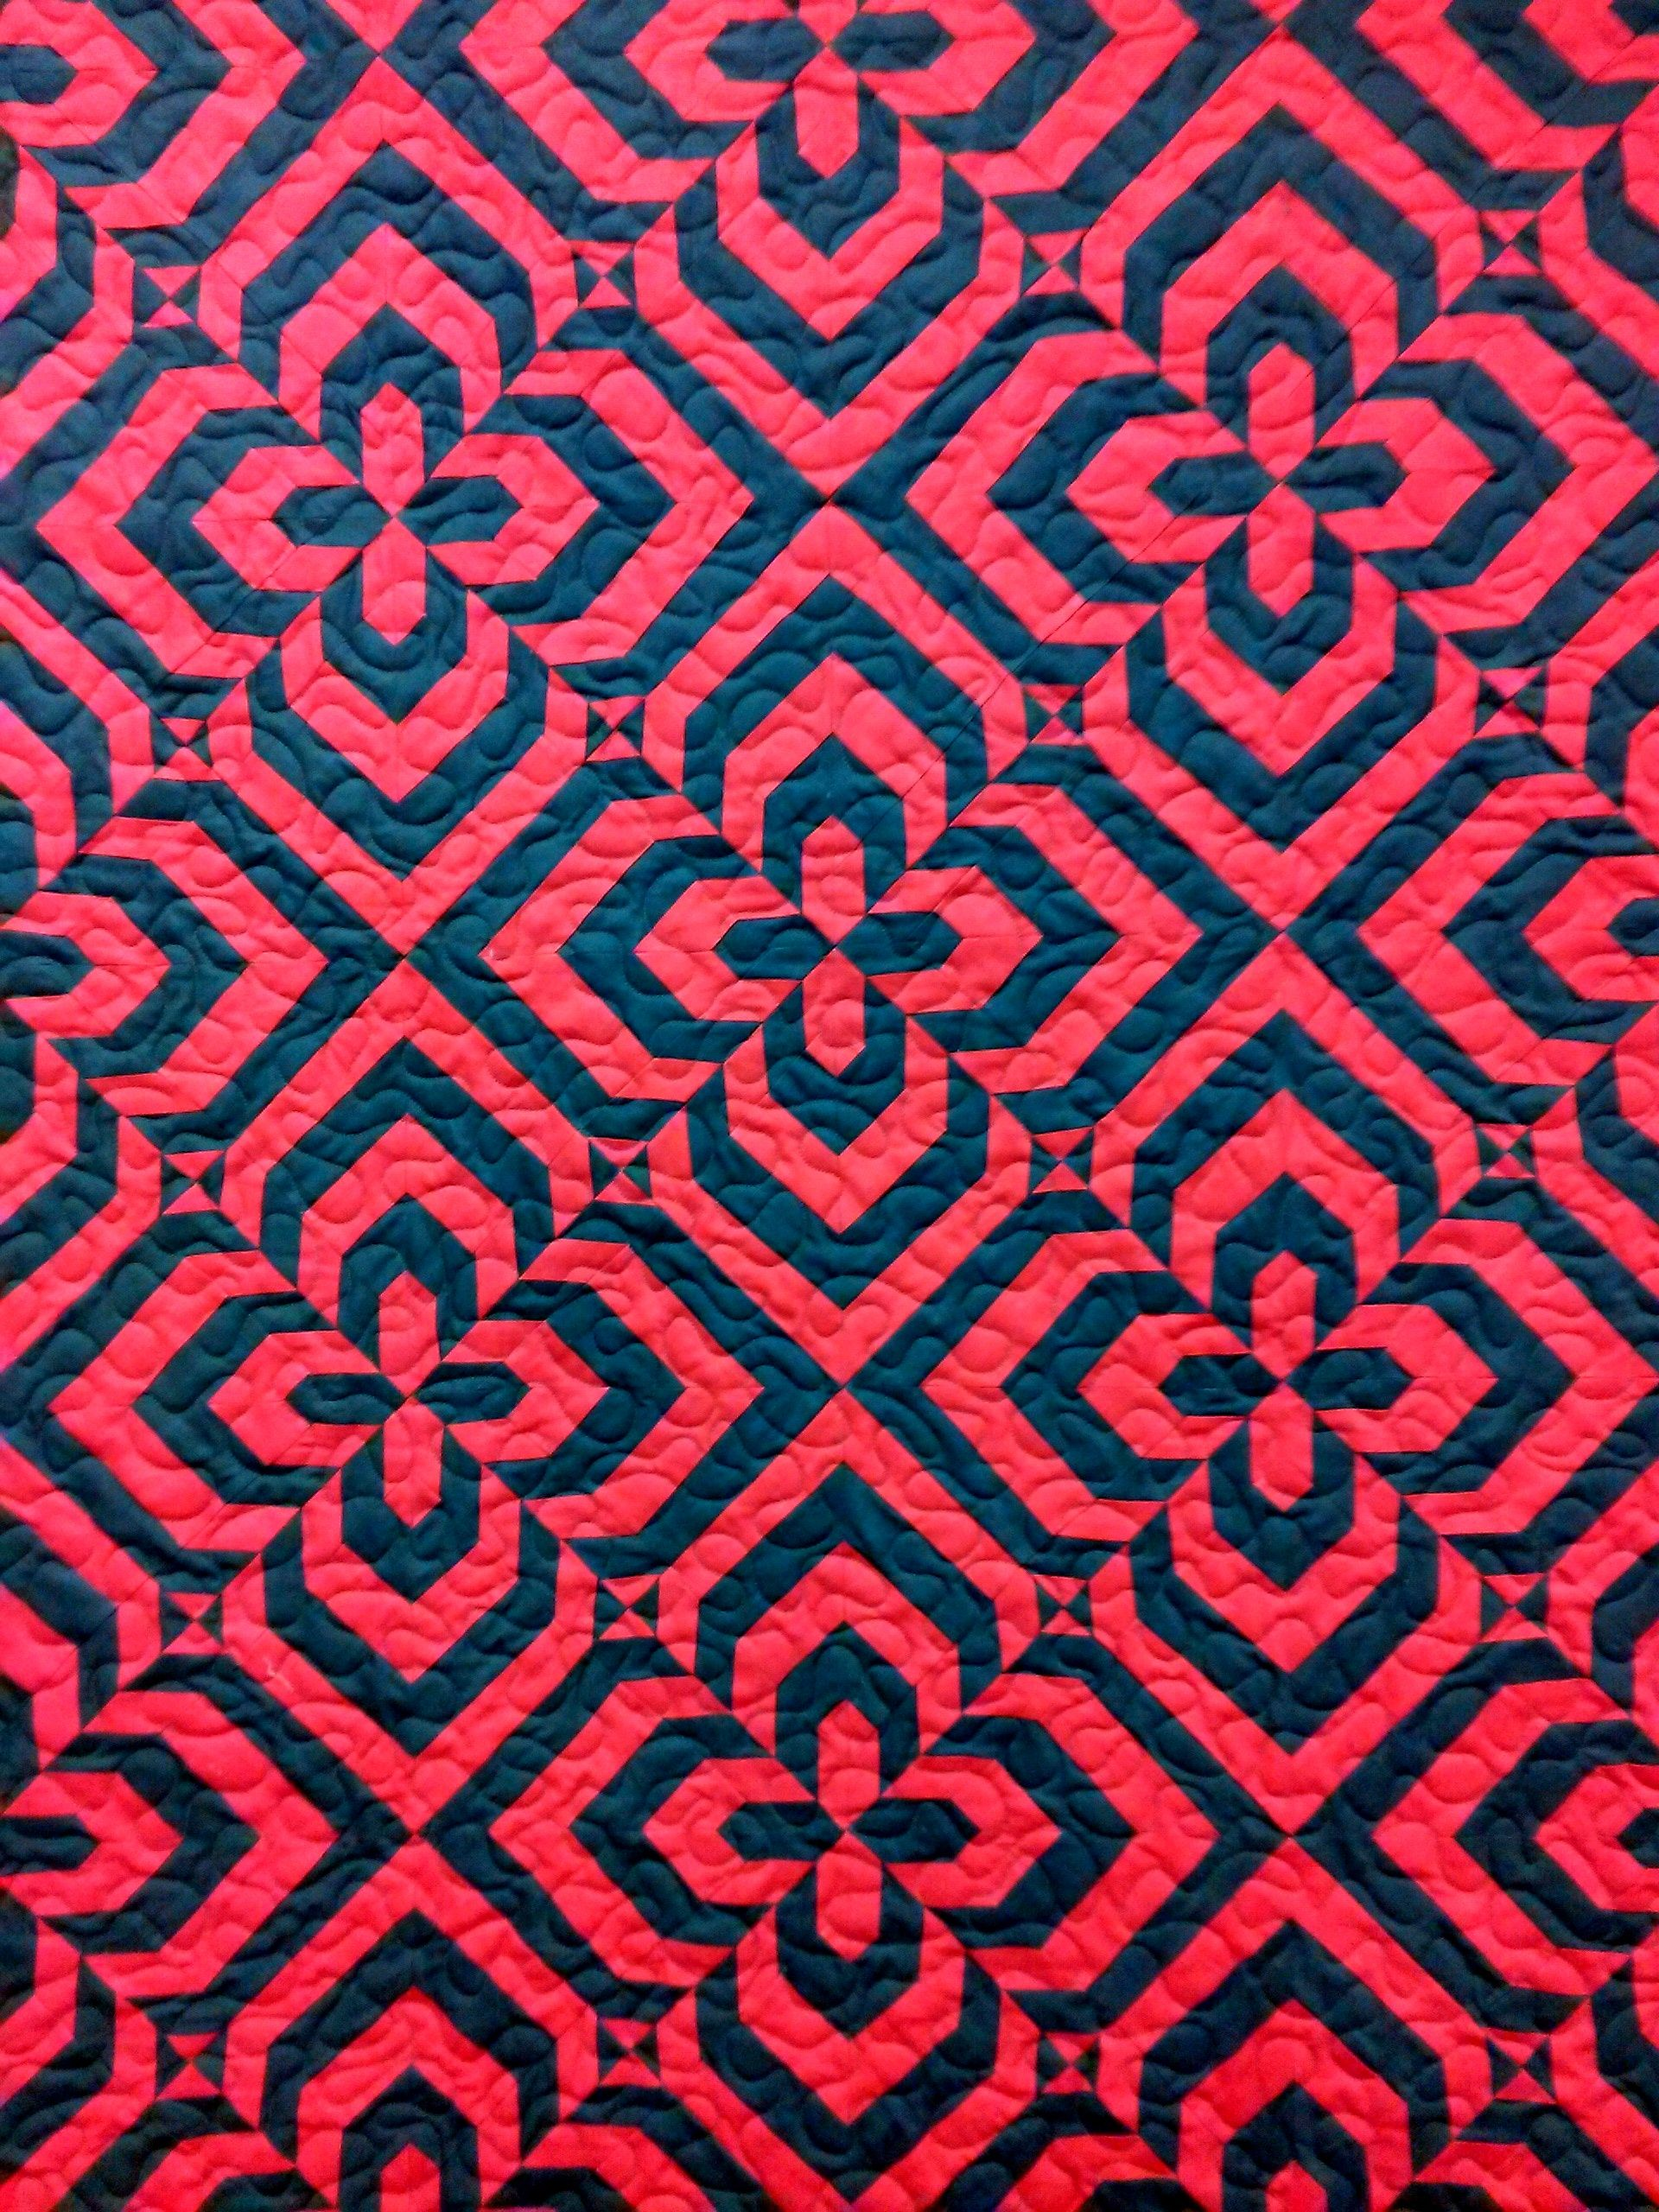 Quiltique quilt store in Henderson, NV, had a dark gray and red ... : quilt stores in las vegas nv - Adamdwight.com